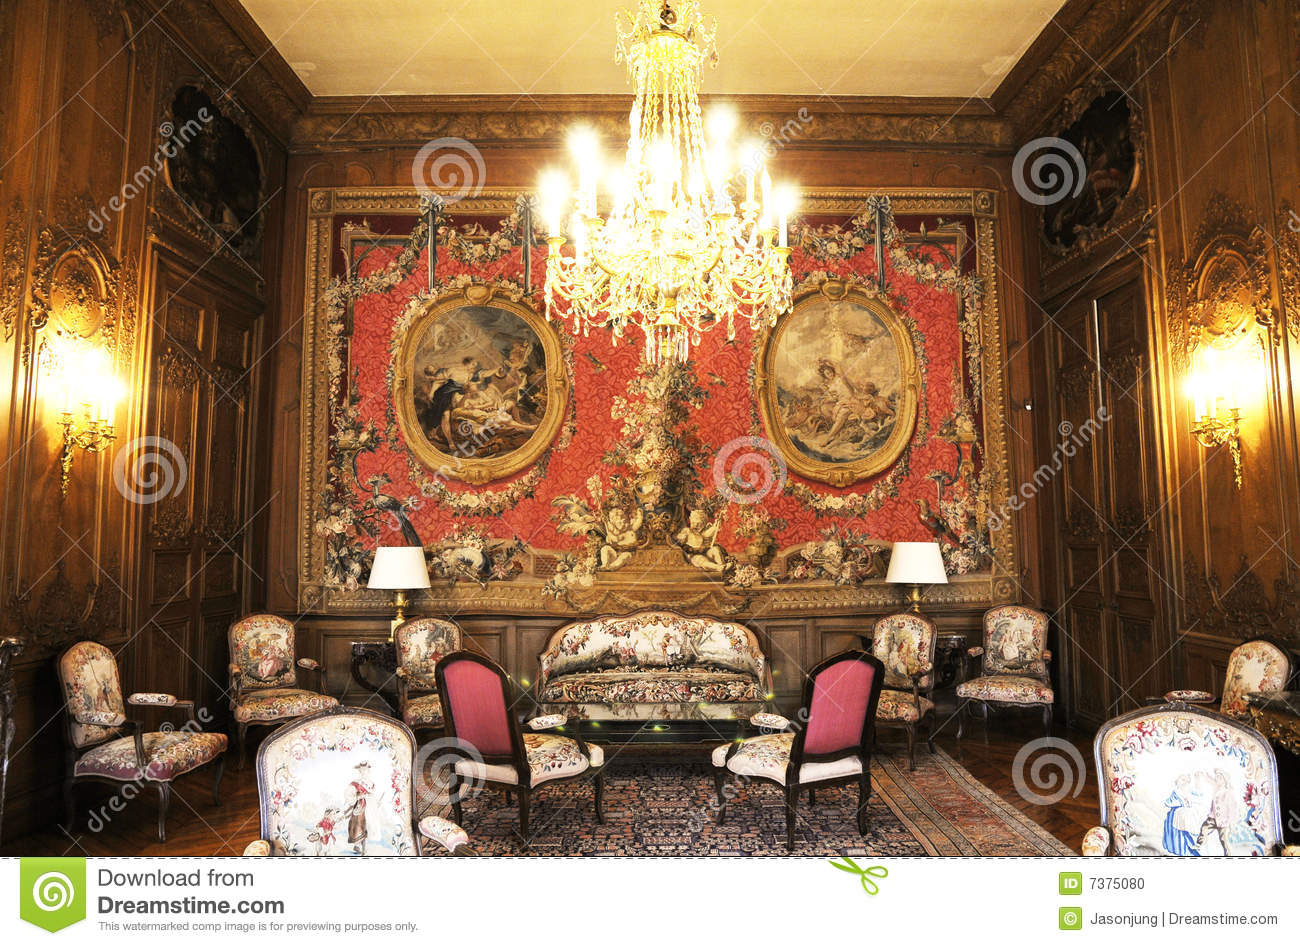 Luxury Living Room Of Middle Ages Stock Photo  Image 7375080